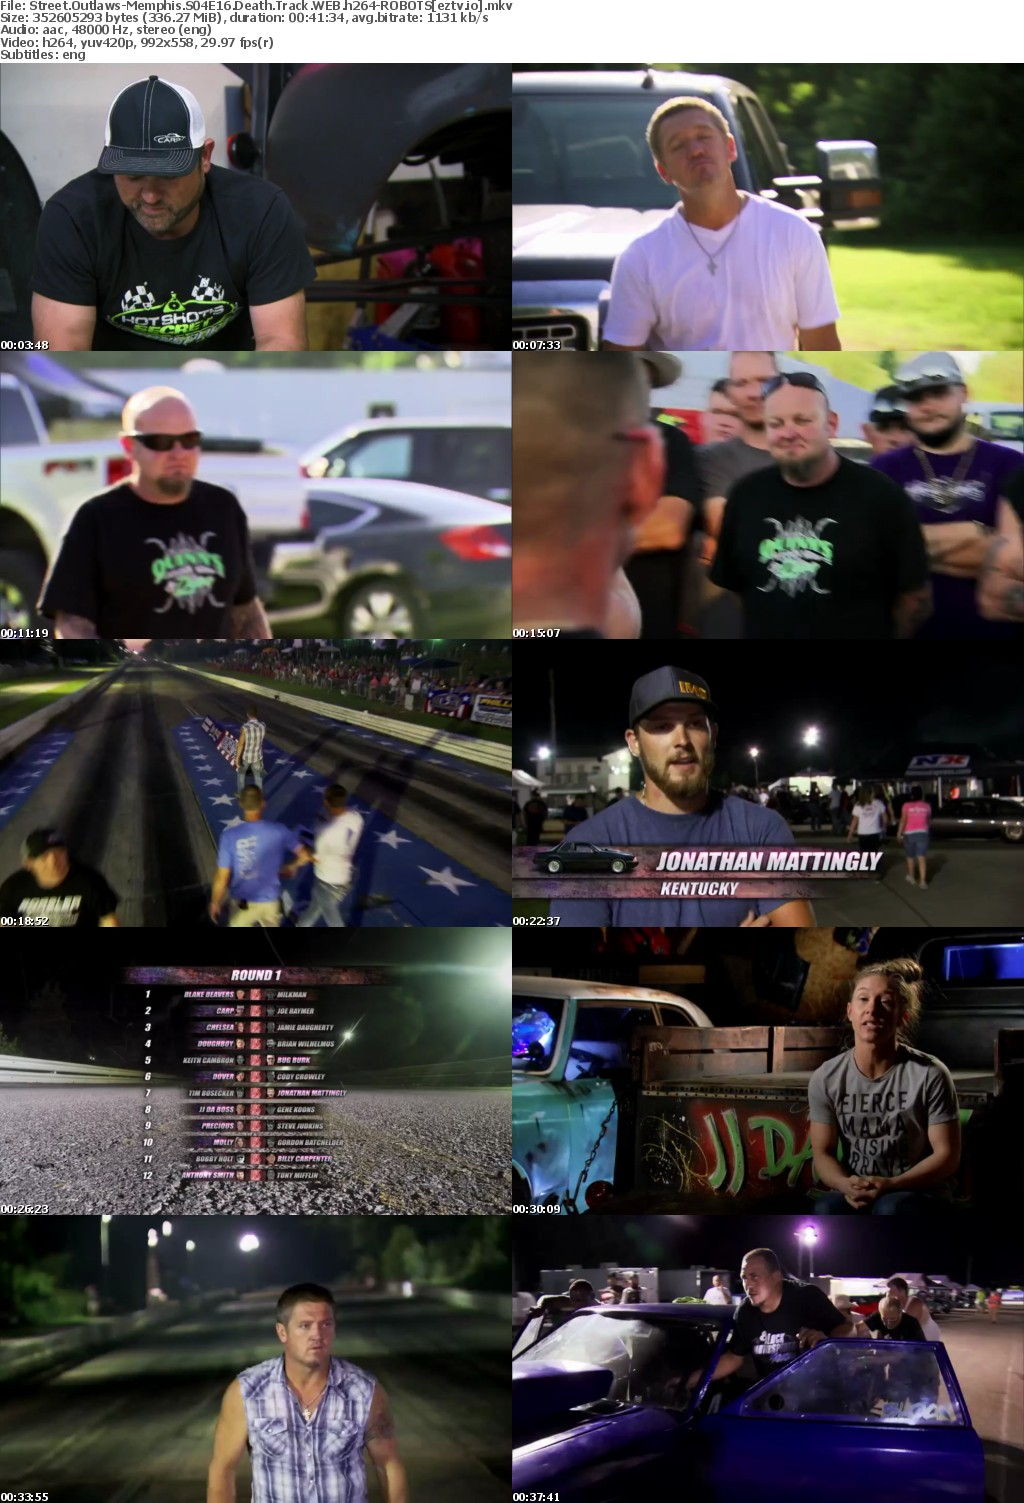 Street Outlaws-Memphis S04E16 Death Track WEB h264-ROBOTS